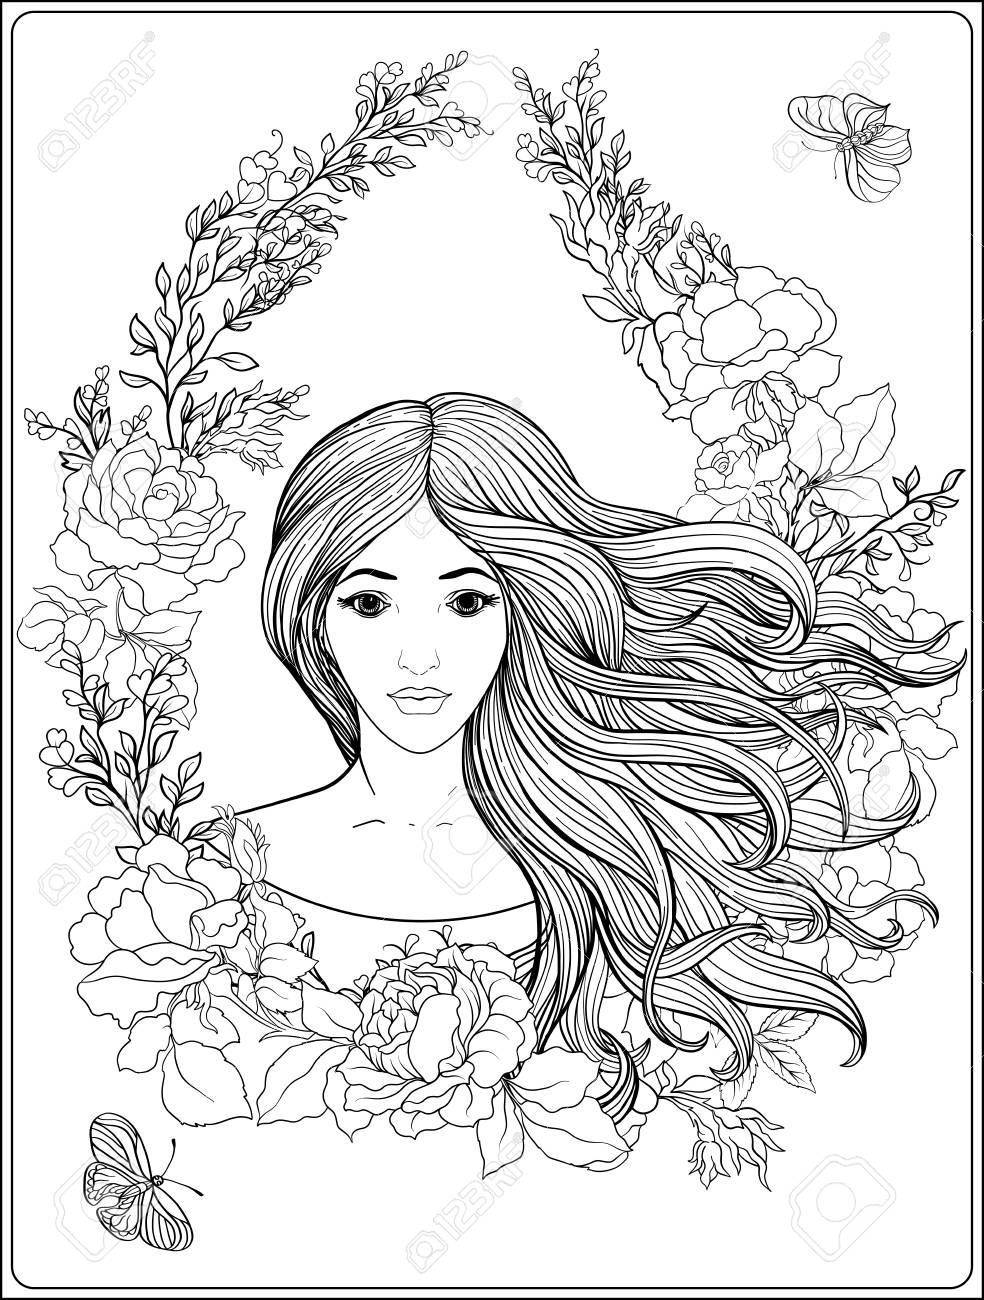 Girl With Long Hair Drawing at GetDrawings.com | Free for ...